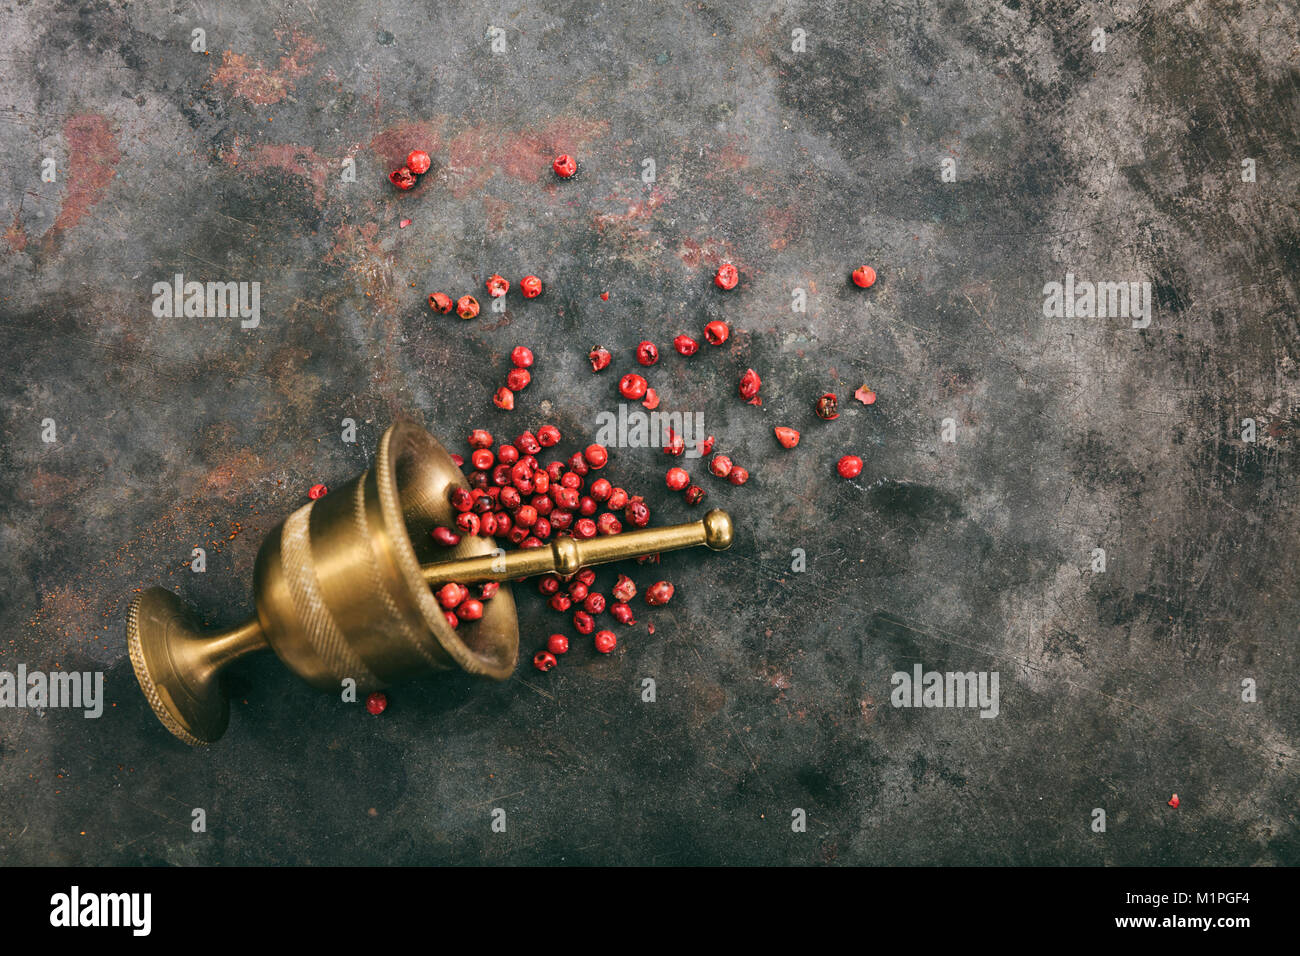 Pink pepper seeds and a brass mortar on metal rusty background, top view, copy space Stock Photo